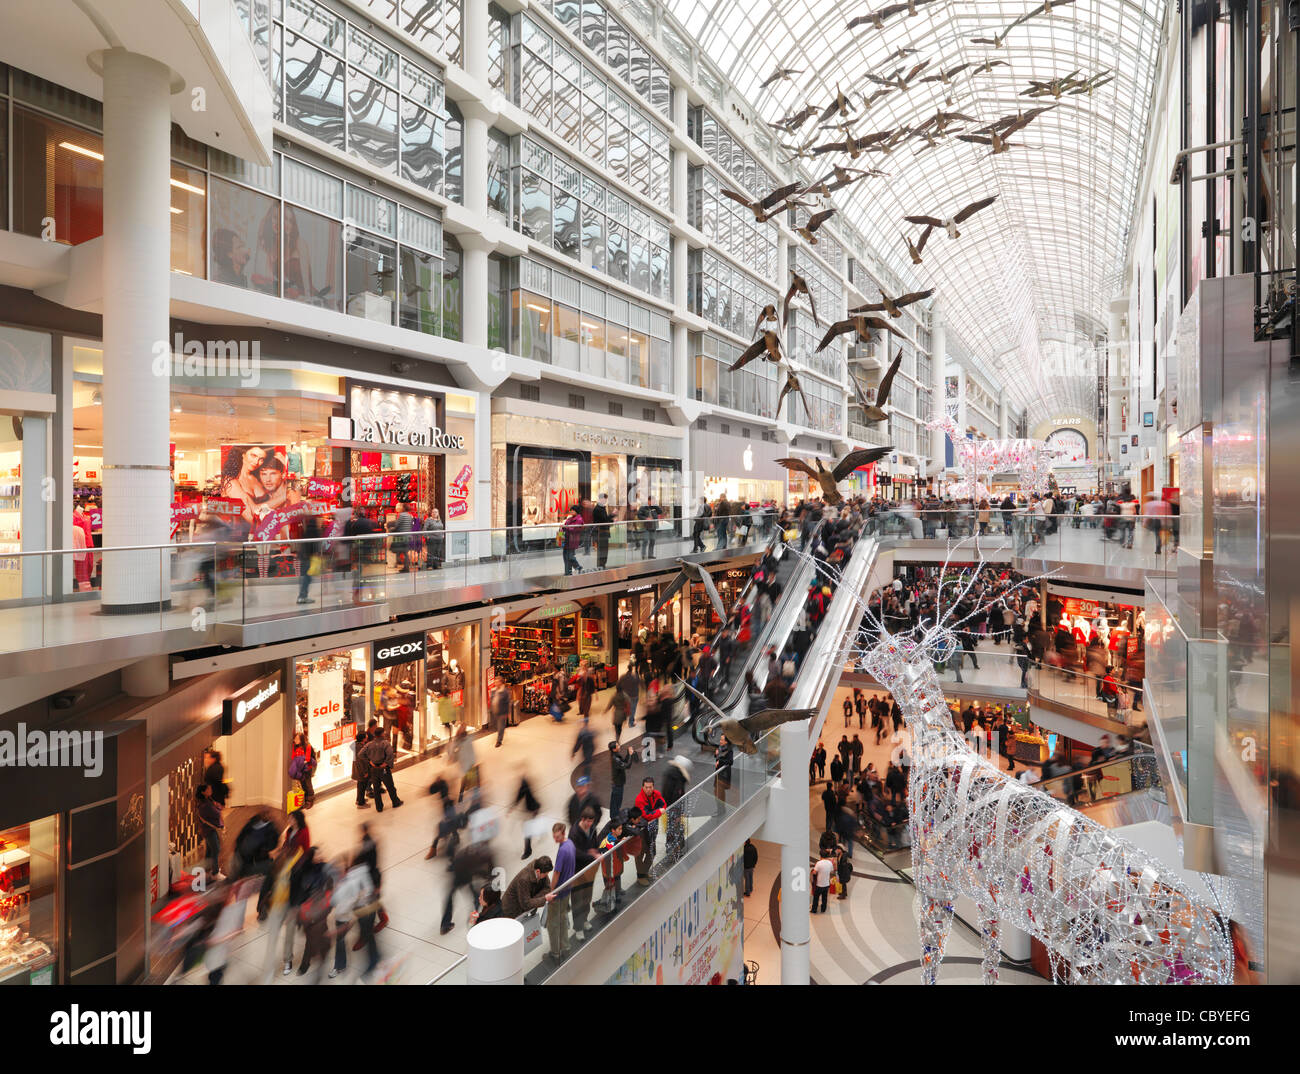 Discover every shop inside the CF Toronto Eaton Centre mall. Mall stores can all be found in our directory. Search stores alphabetically or by category.